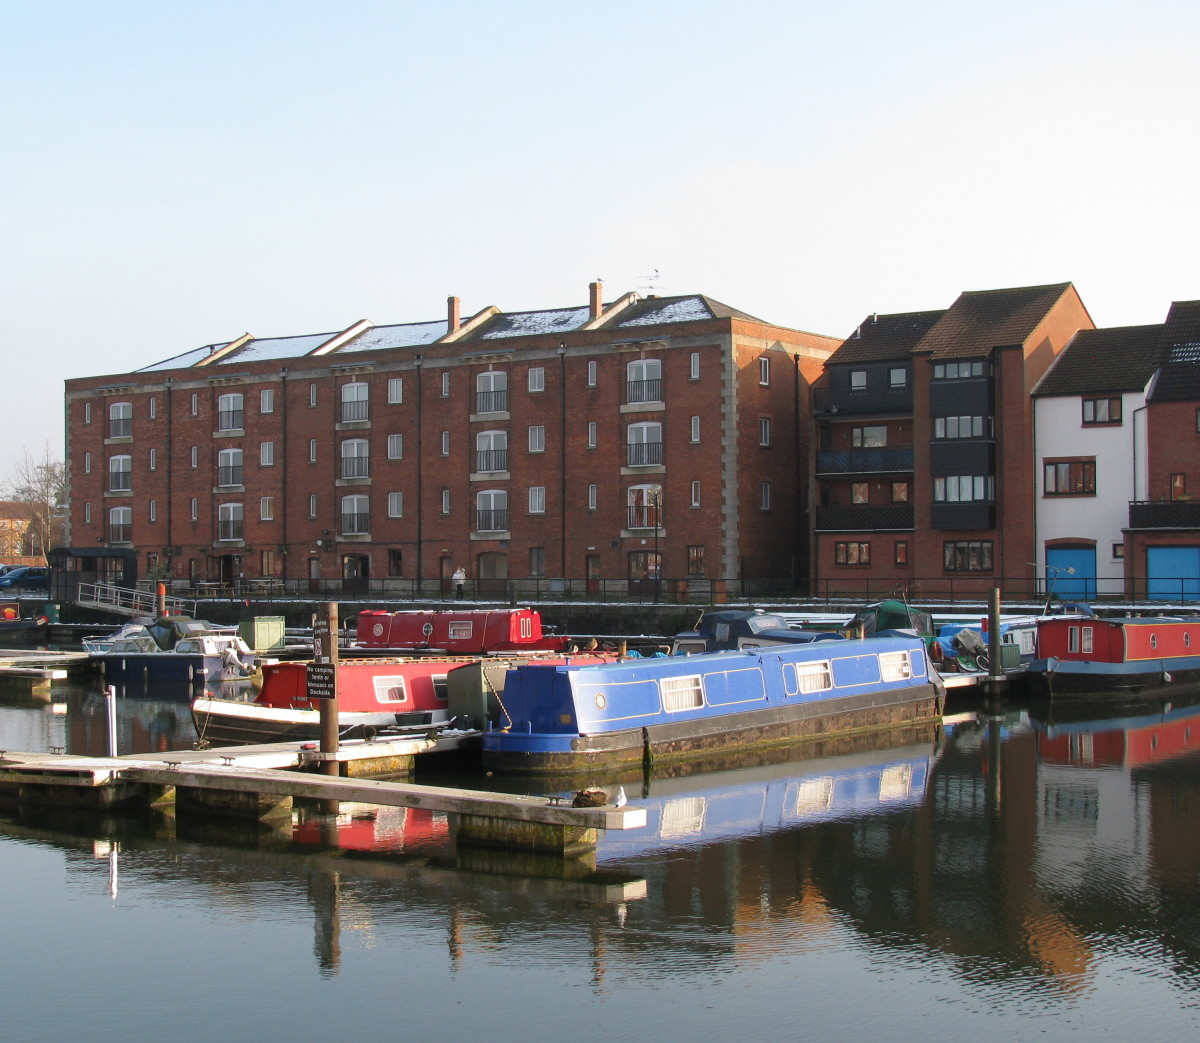 Narrow Boats with the converted Warehouses (now flats) in the background